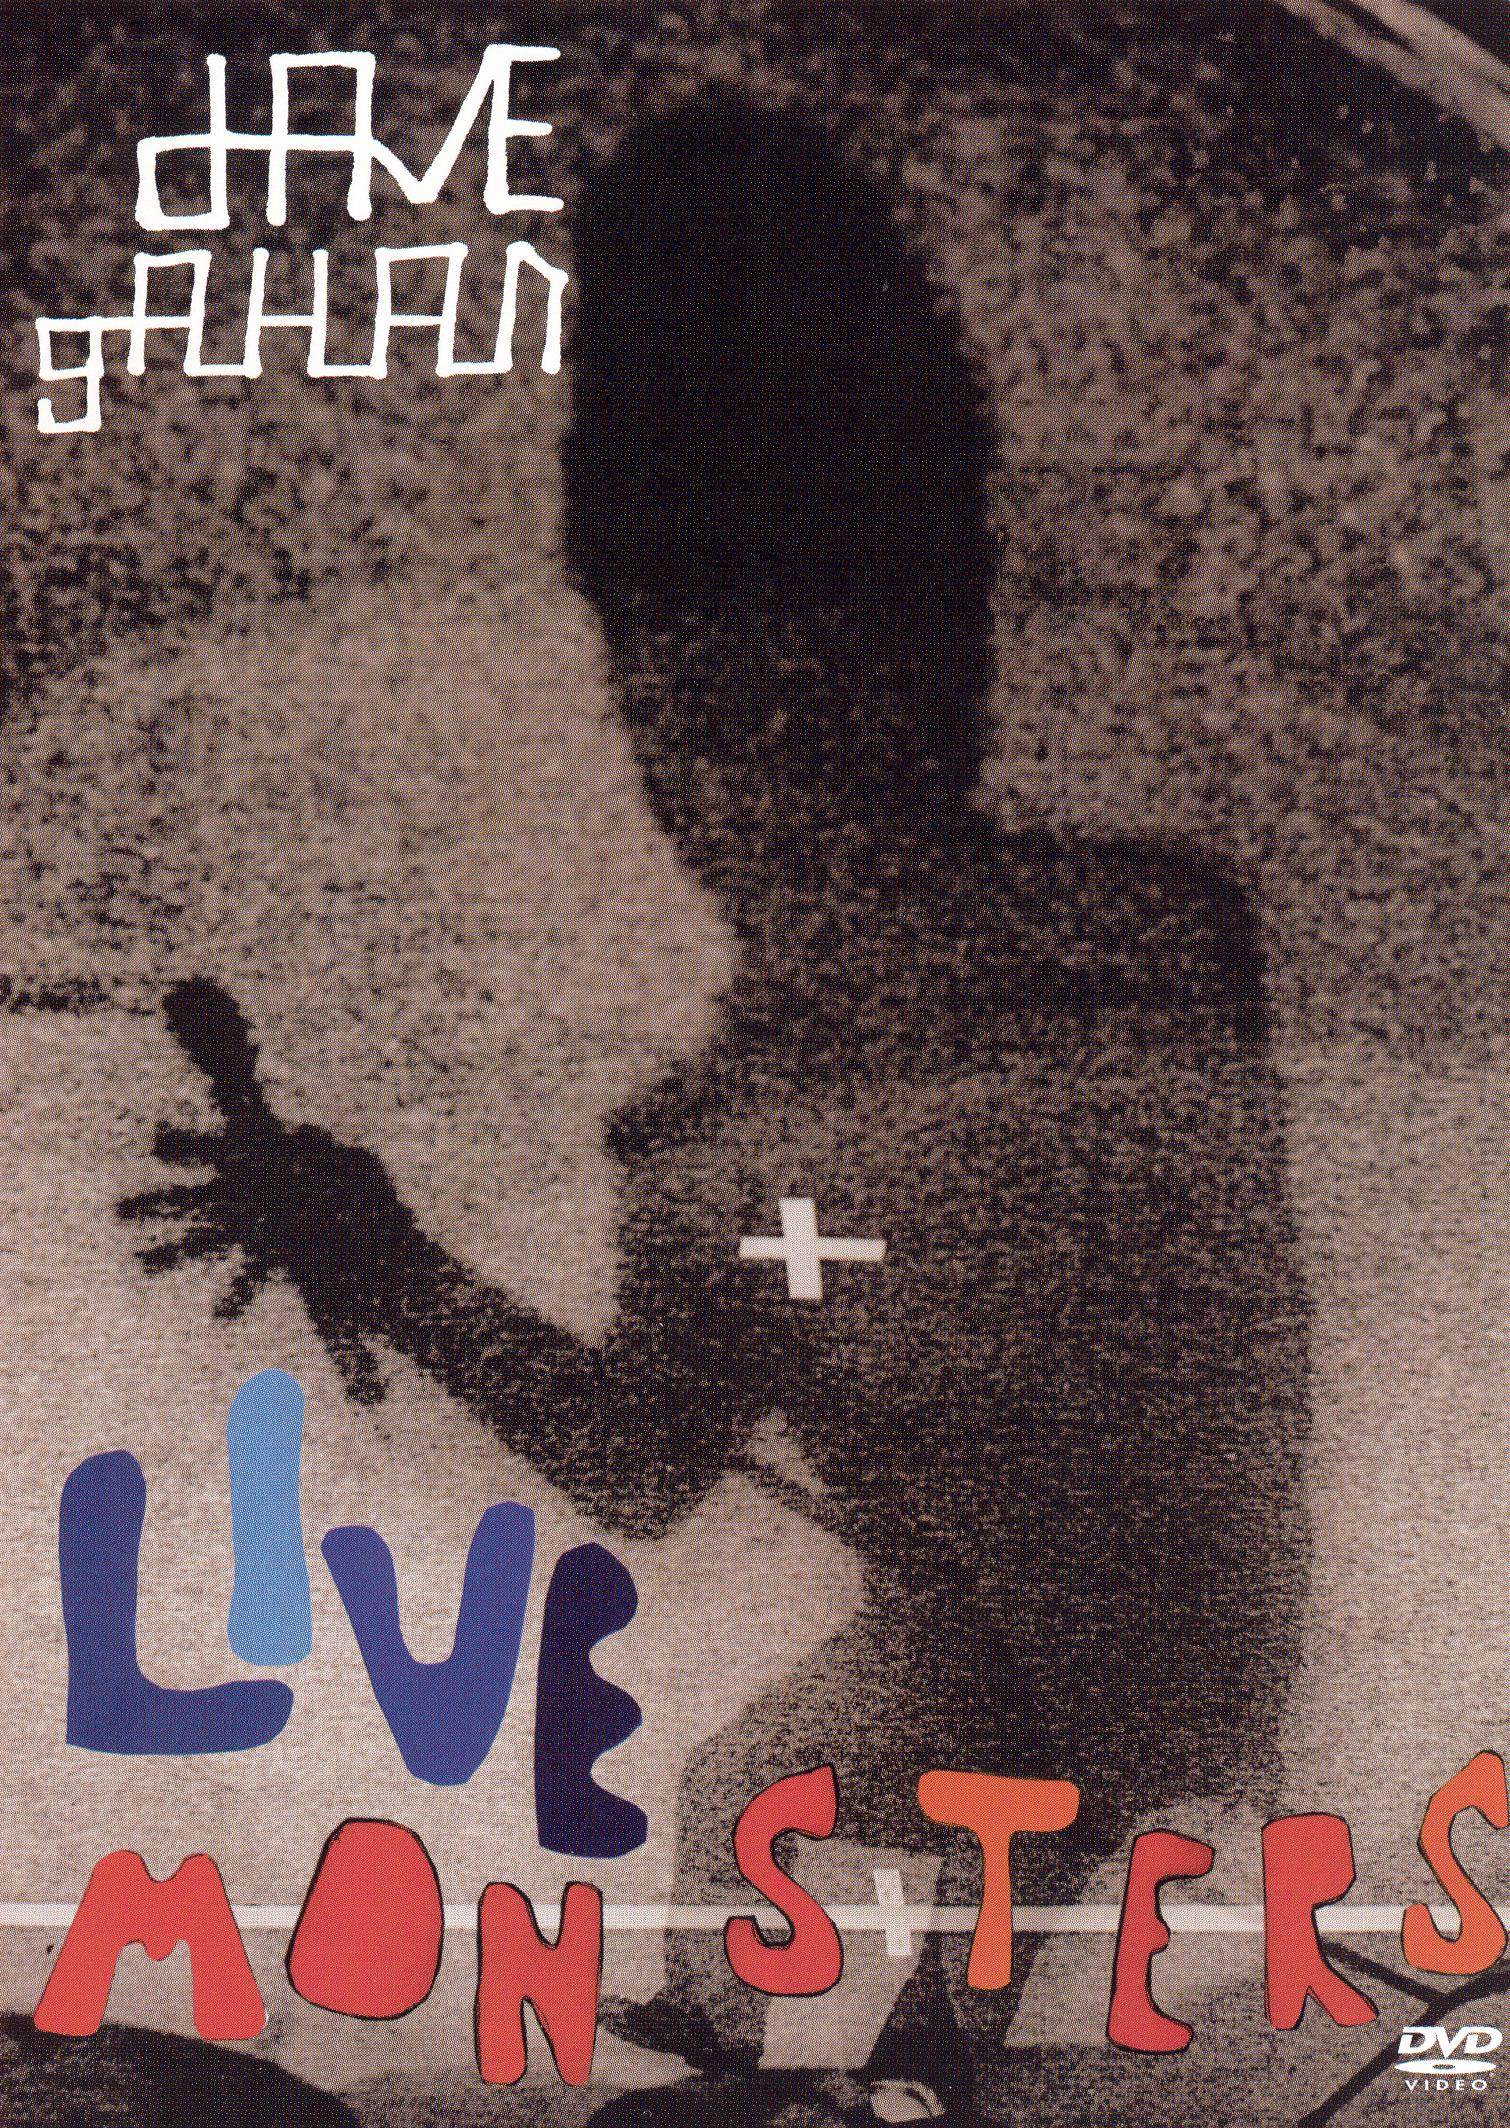 Dave Gahan: Live Monsters